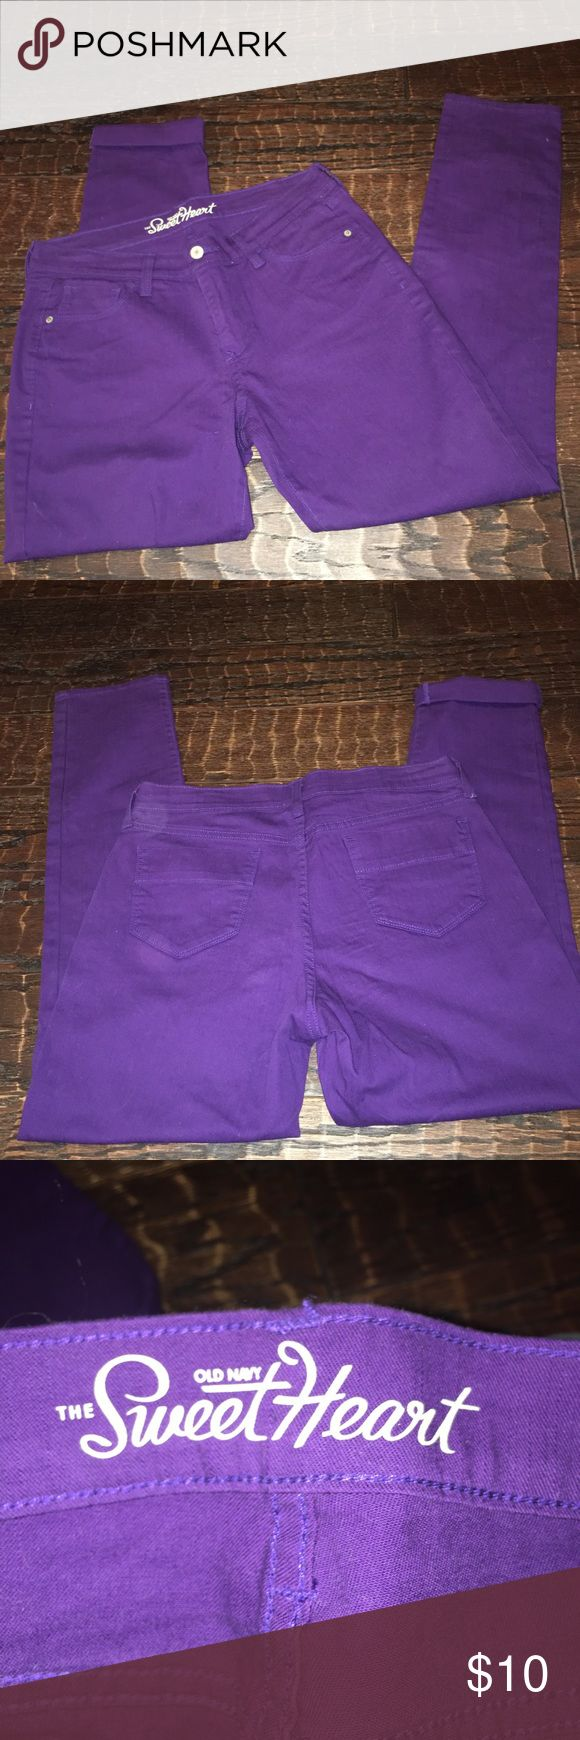 Old navy jeans Women's size 10, sweetheart style purple jeans. Great condition. *Inseam 30* Old Navy Jeans